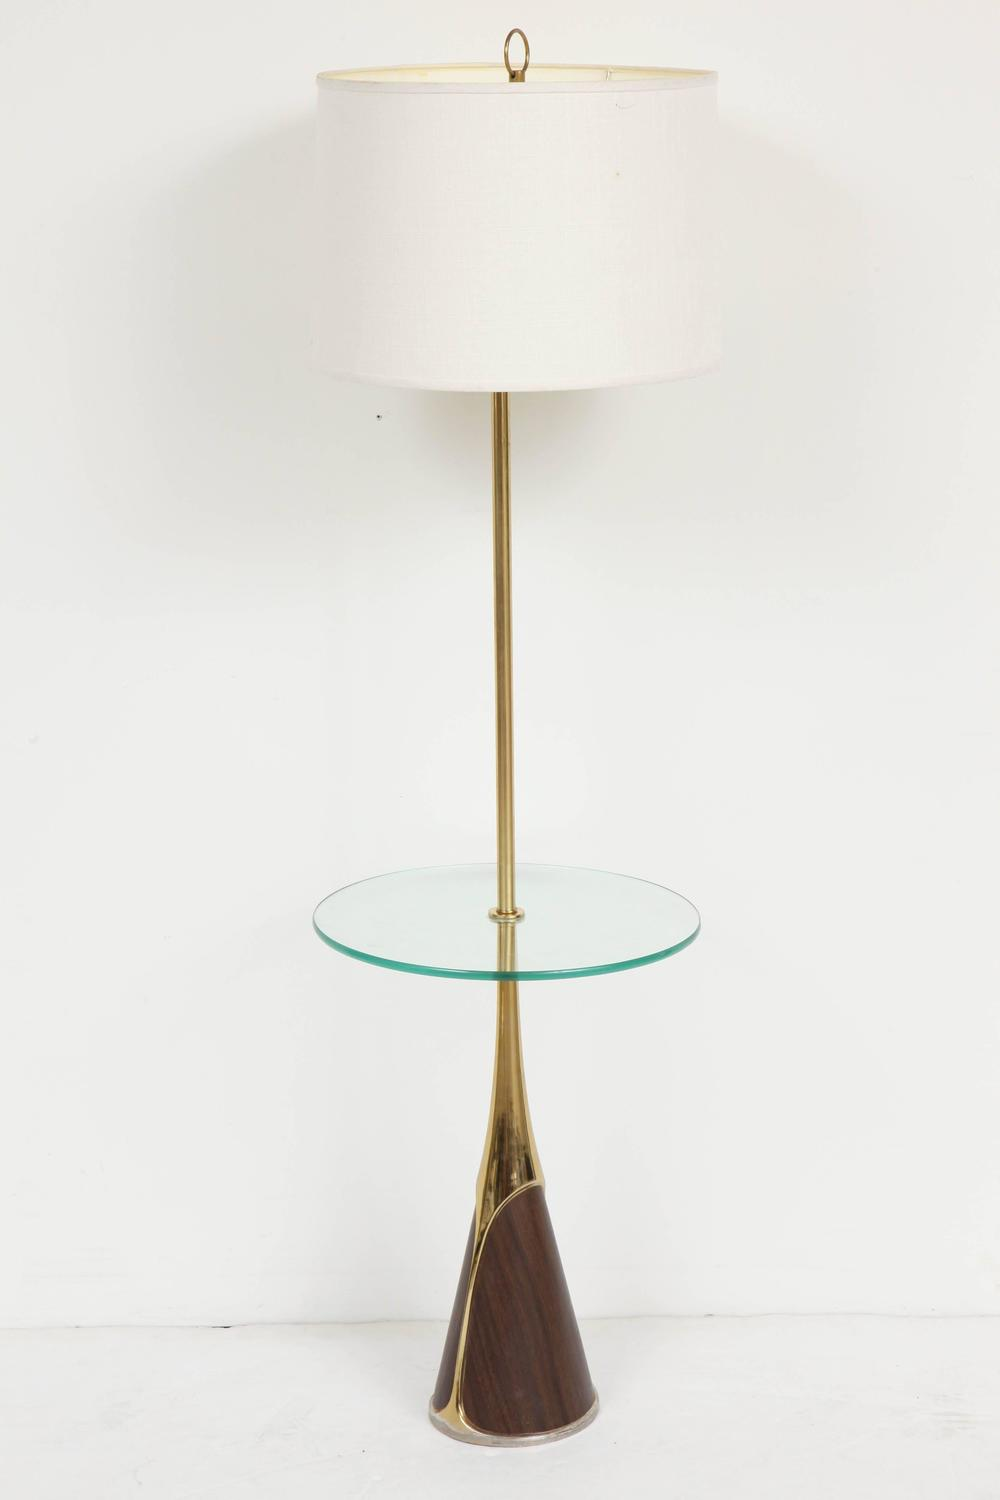 laurel floor lamp with table shelf for sale at 1stdibs. Black Bedroom Furniture Sets. Home Design Ideas